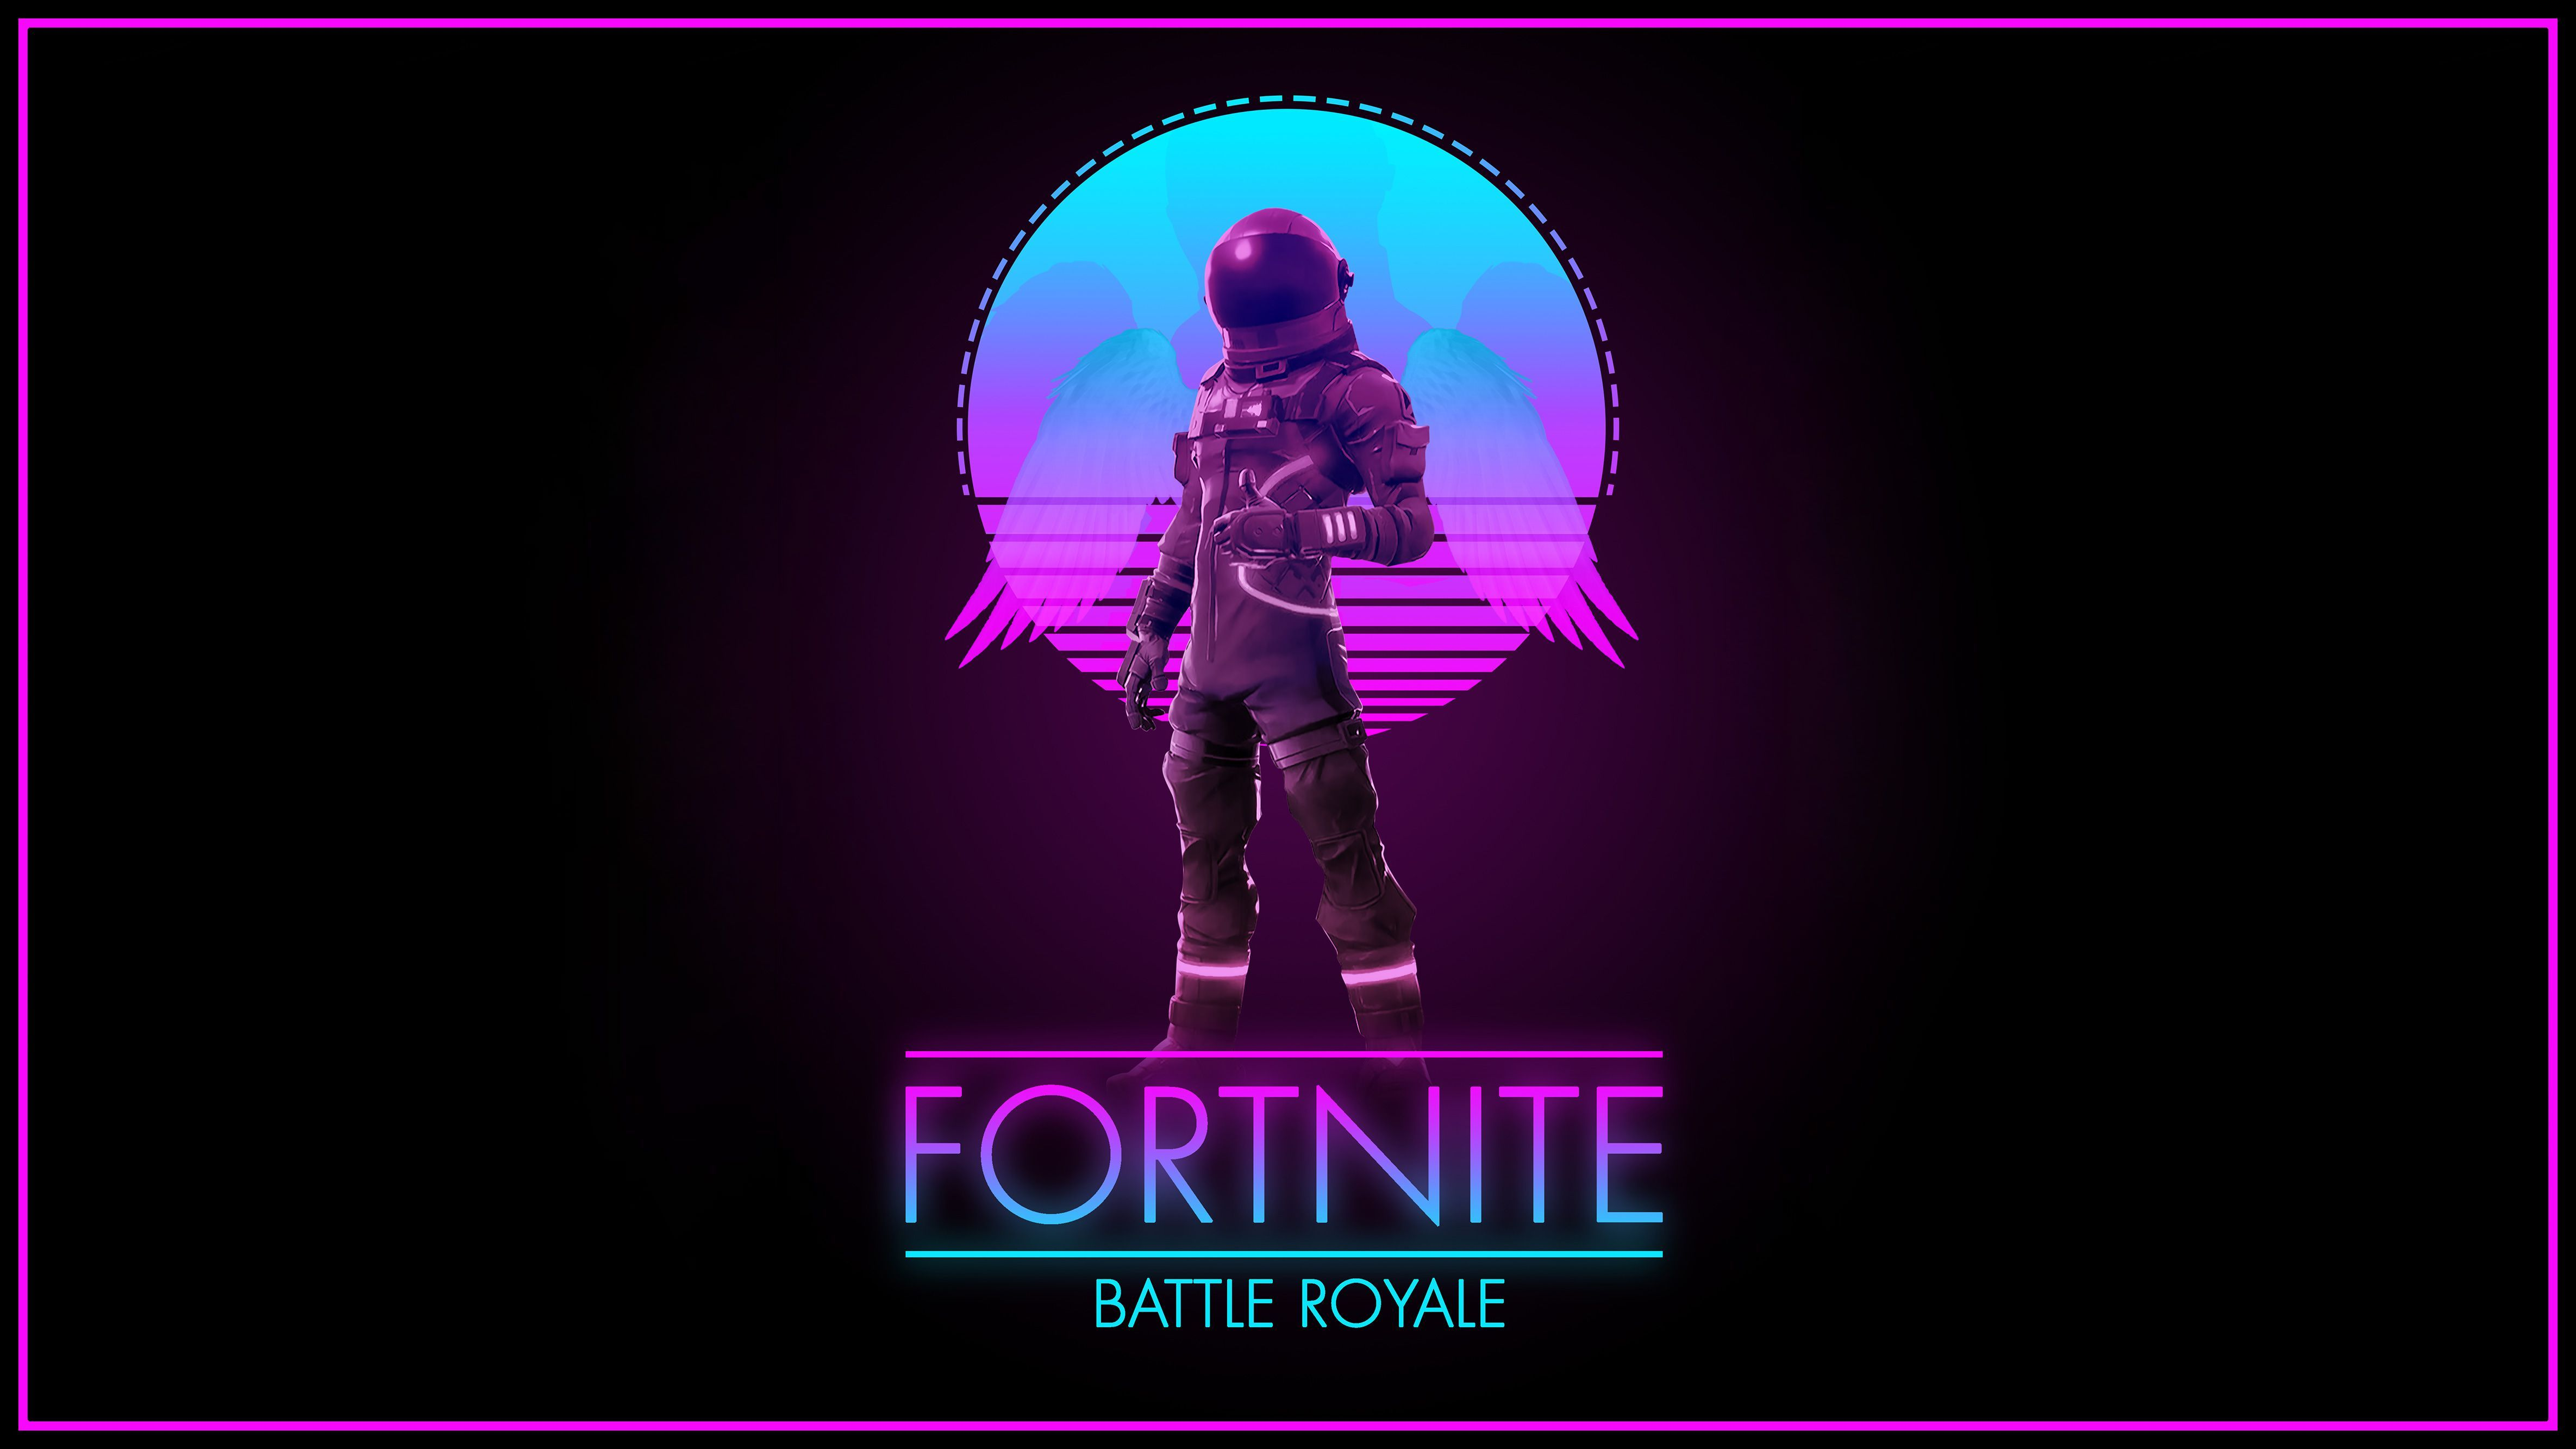 Fortnite Battle Royale 4K Wallpapers